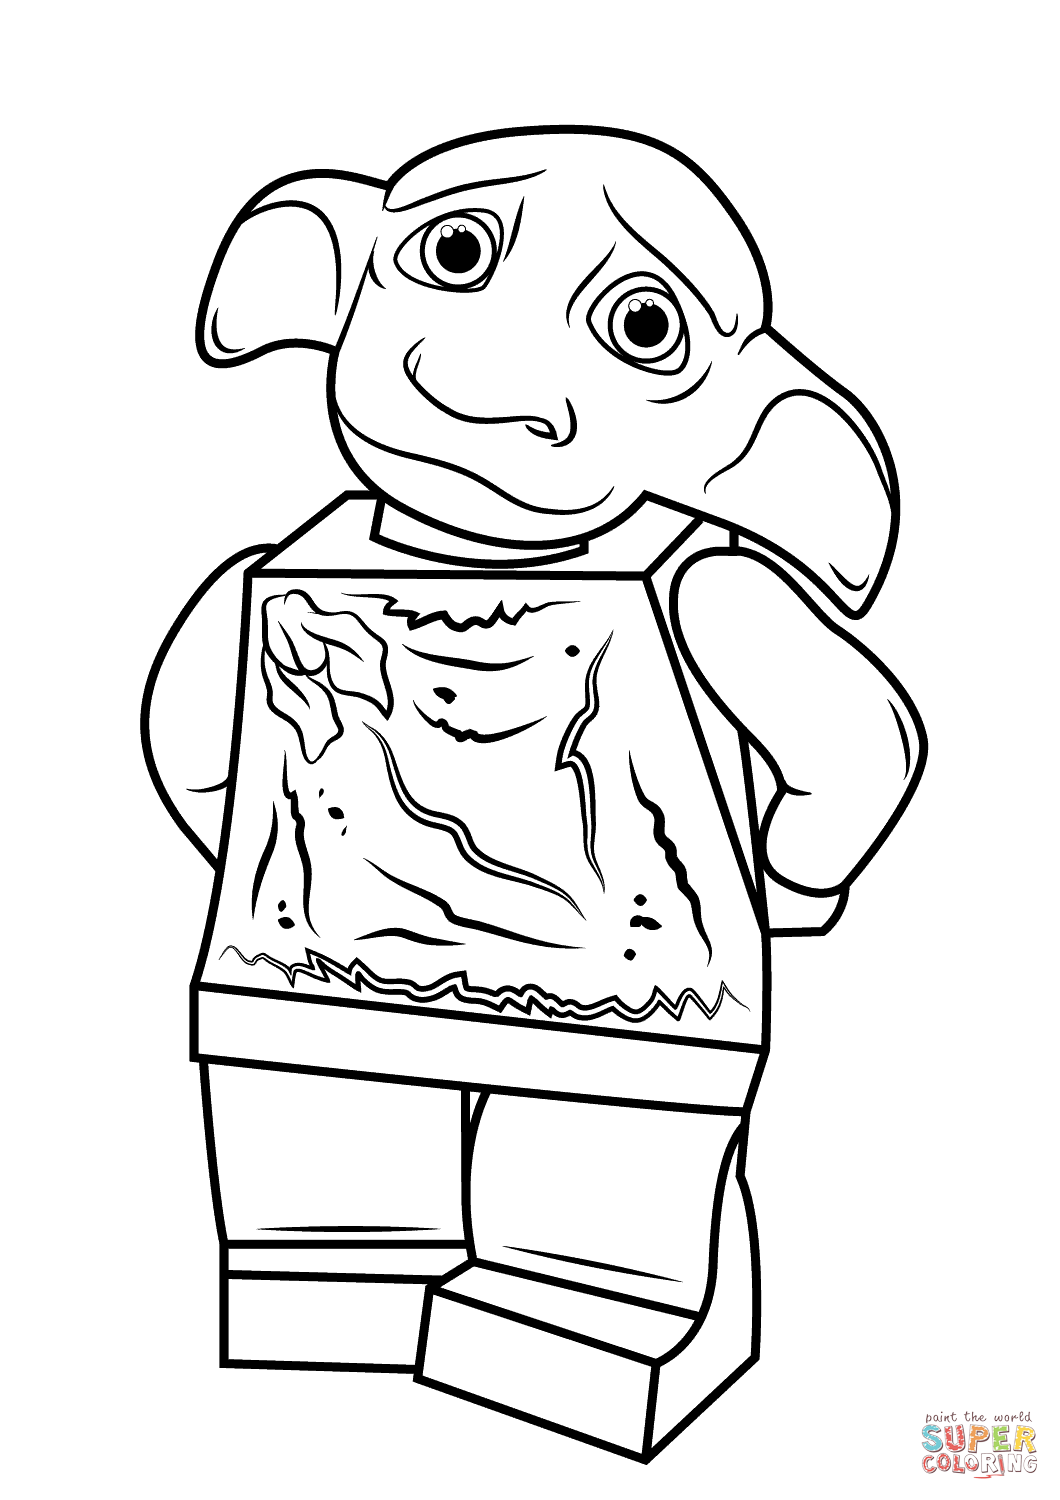 harry potter coloring pages pdf | Lego Harry Potter Dobby Coloring Page | Free Printable ...